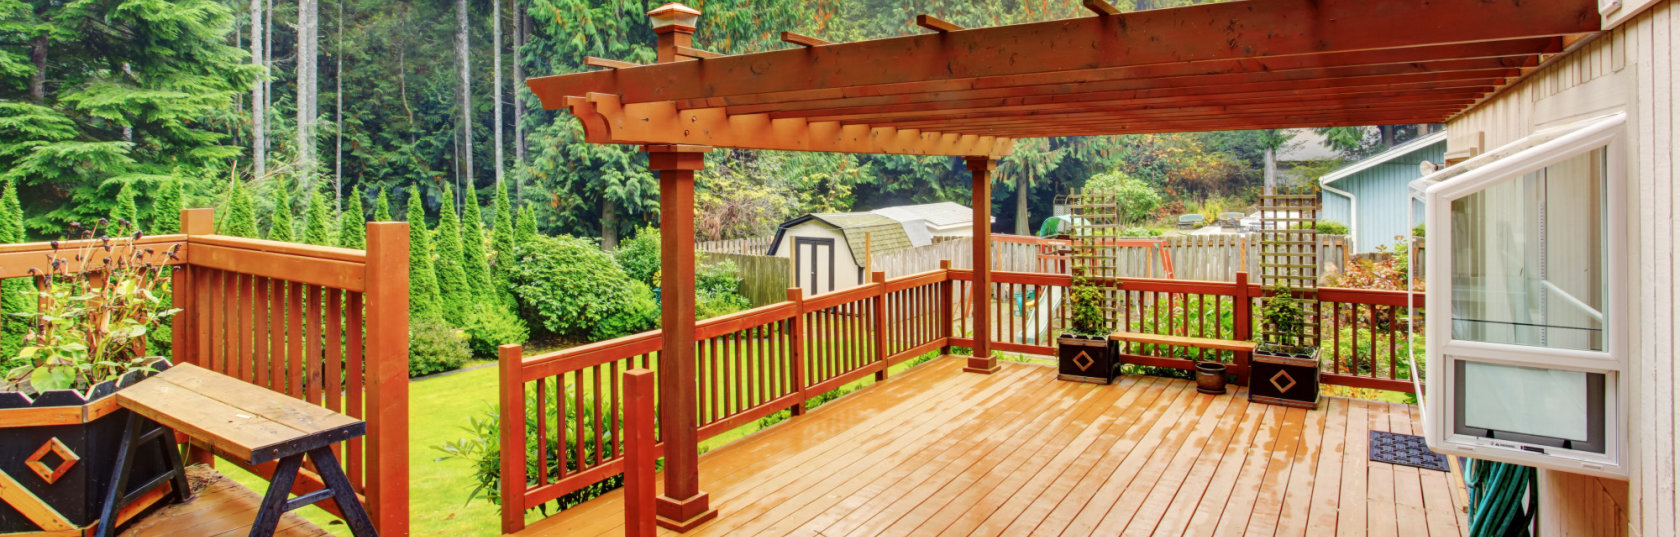 27 Timber Decking Materials: Which Wood is Best for Your Backyard?